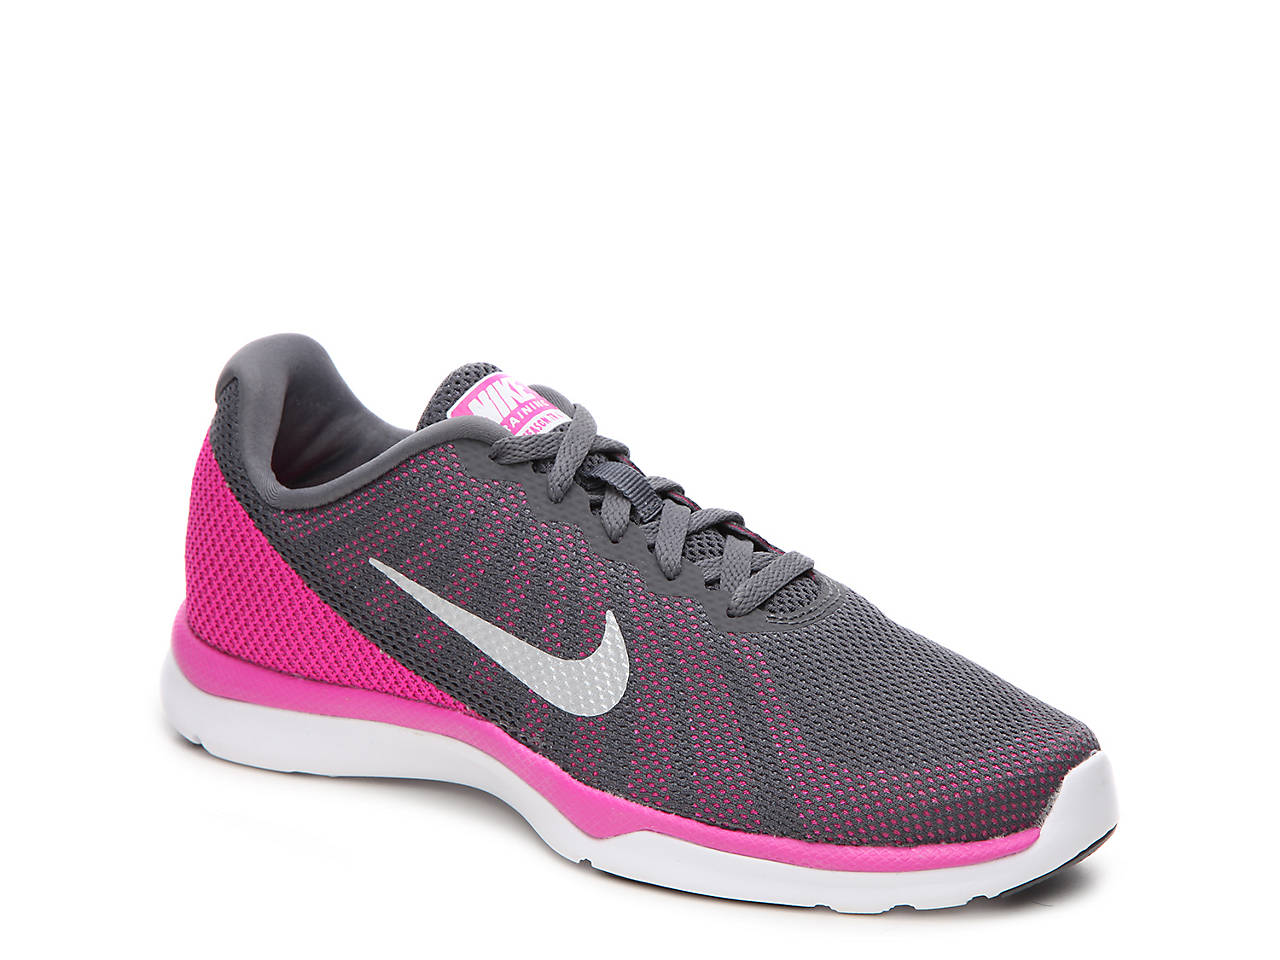 fec7f3f092ee Nike In Season TR 6 Training Shoe - Women s Women s Shoes